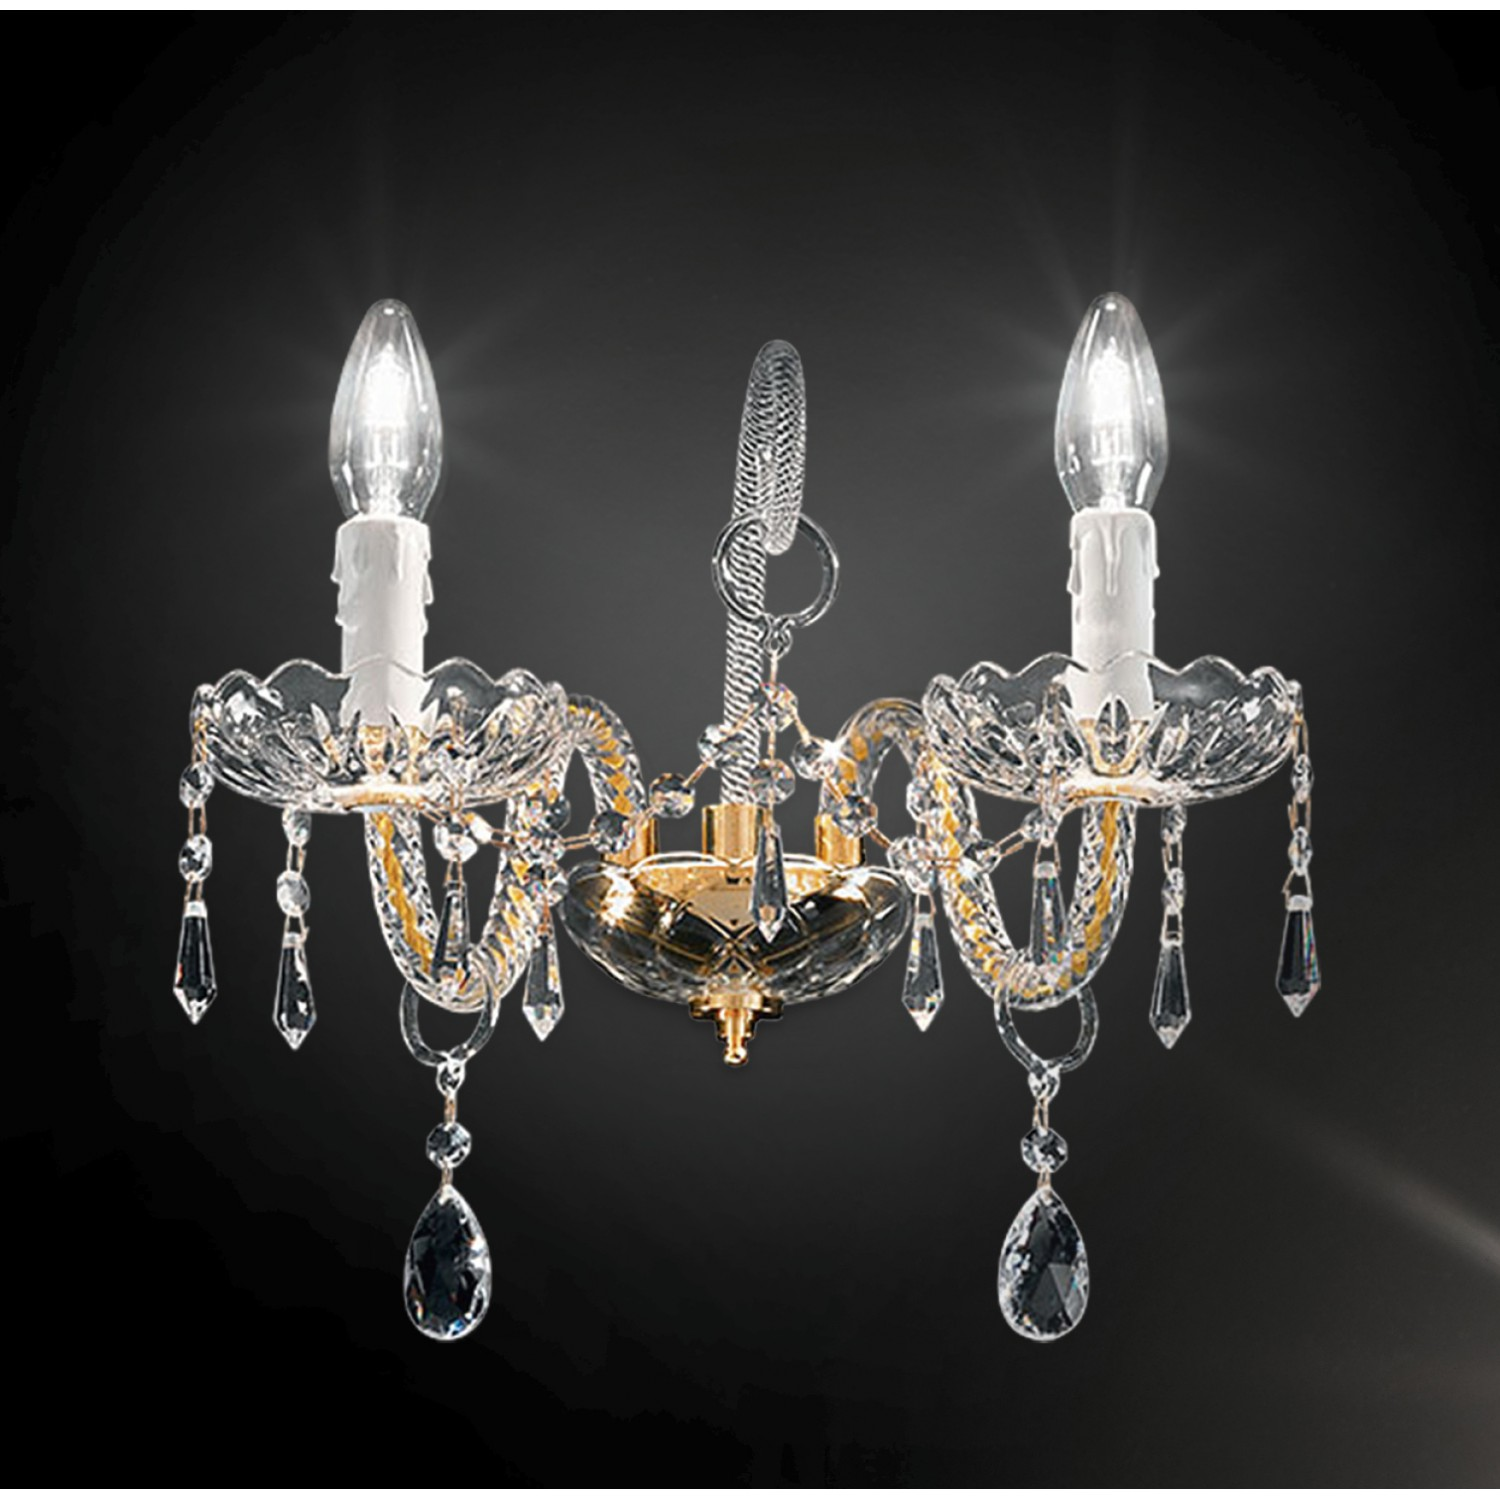 Asfour crystal wall lamp 408a2olasf artital lighting home design asfour crystal wall lamp 408a2olasf aloadofball